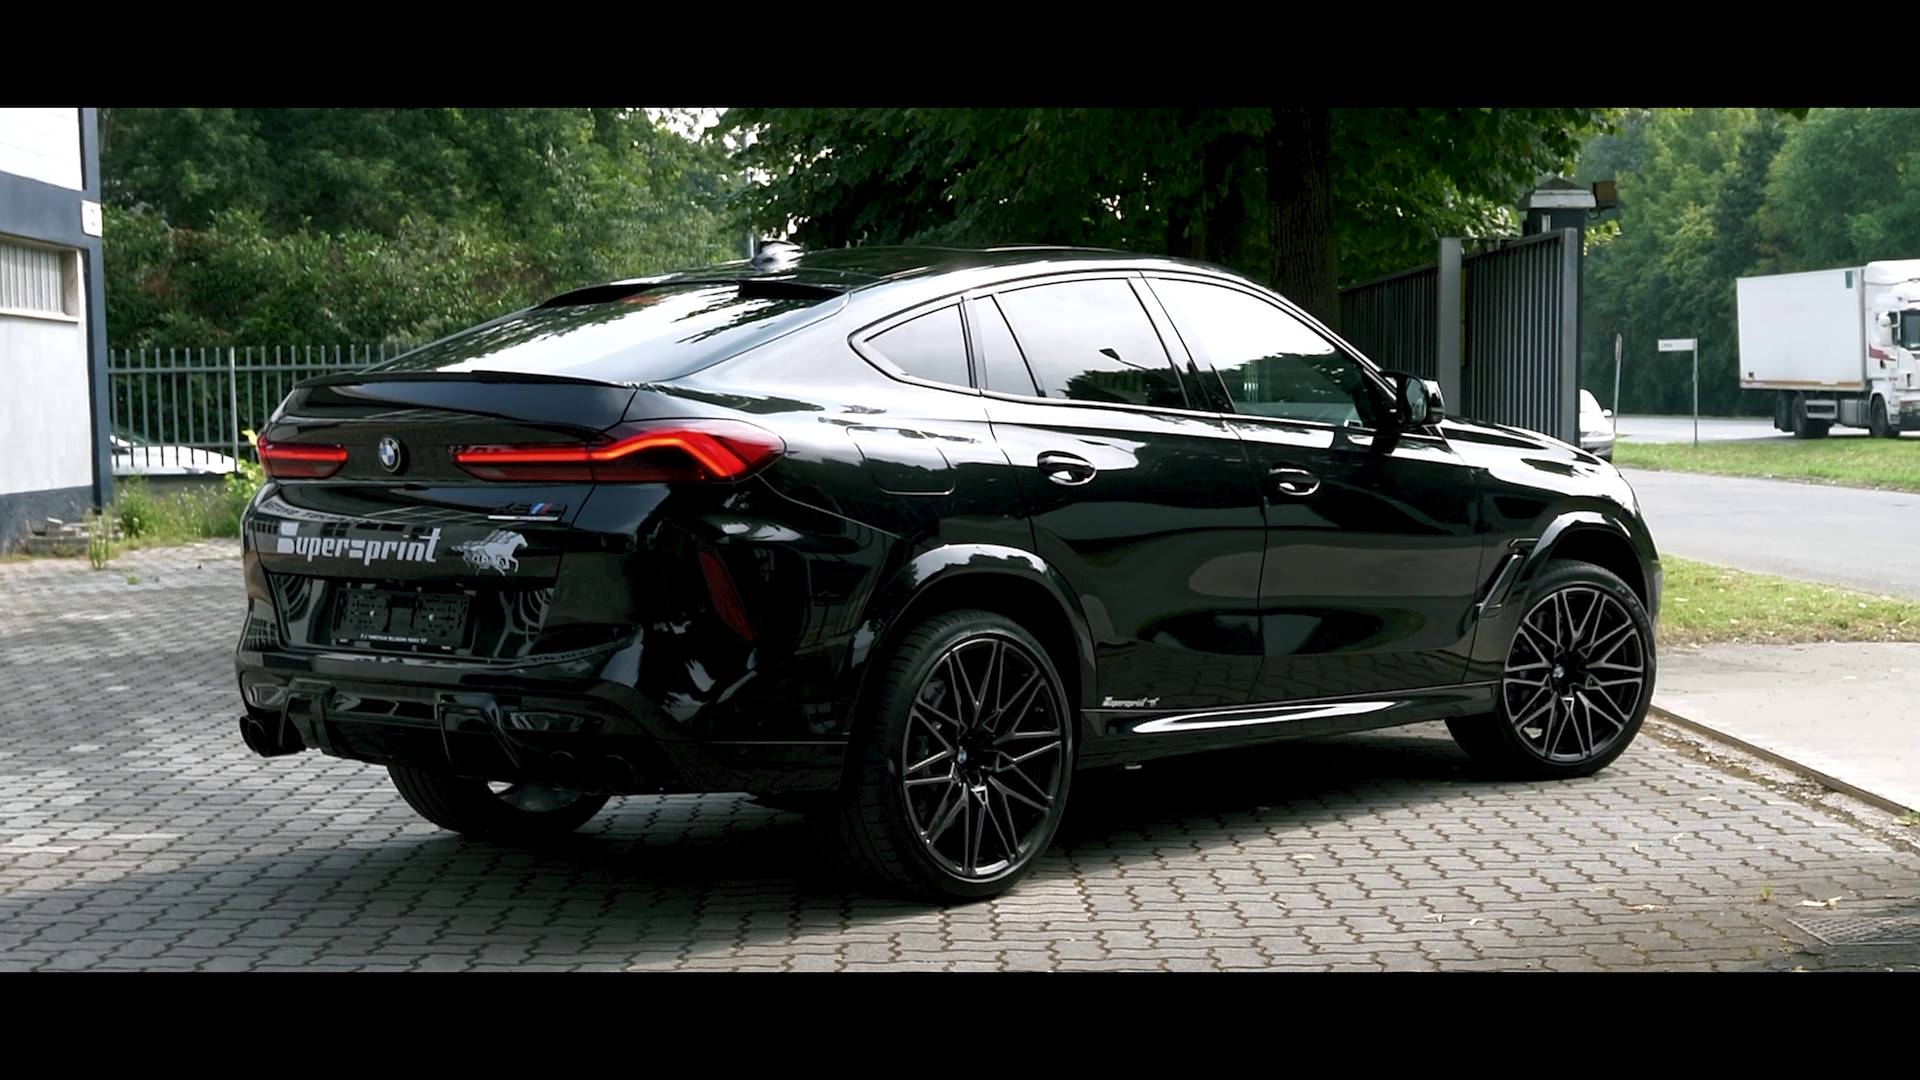 Bmw F96 X6 M Competition X Drive 4 4i V8 S63m 625 Hp Models With Opf 2020 Official Videos